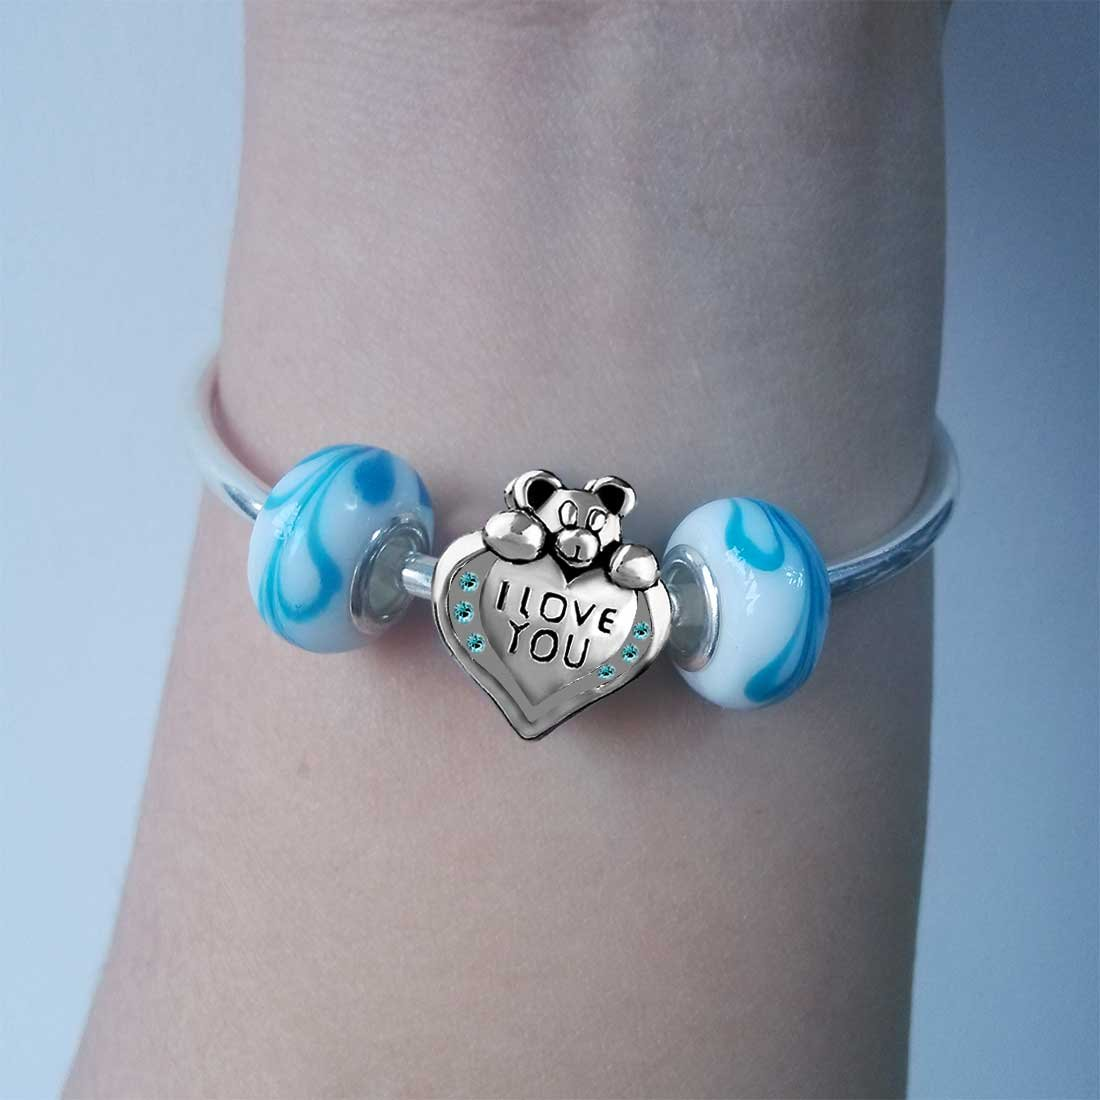 GiftJewelryShop Dachshund Dog with Bone Blue Aquamarine Crystal March Birthstone I Love You Heart Care Bear Charm Bracelets